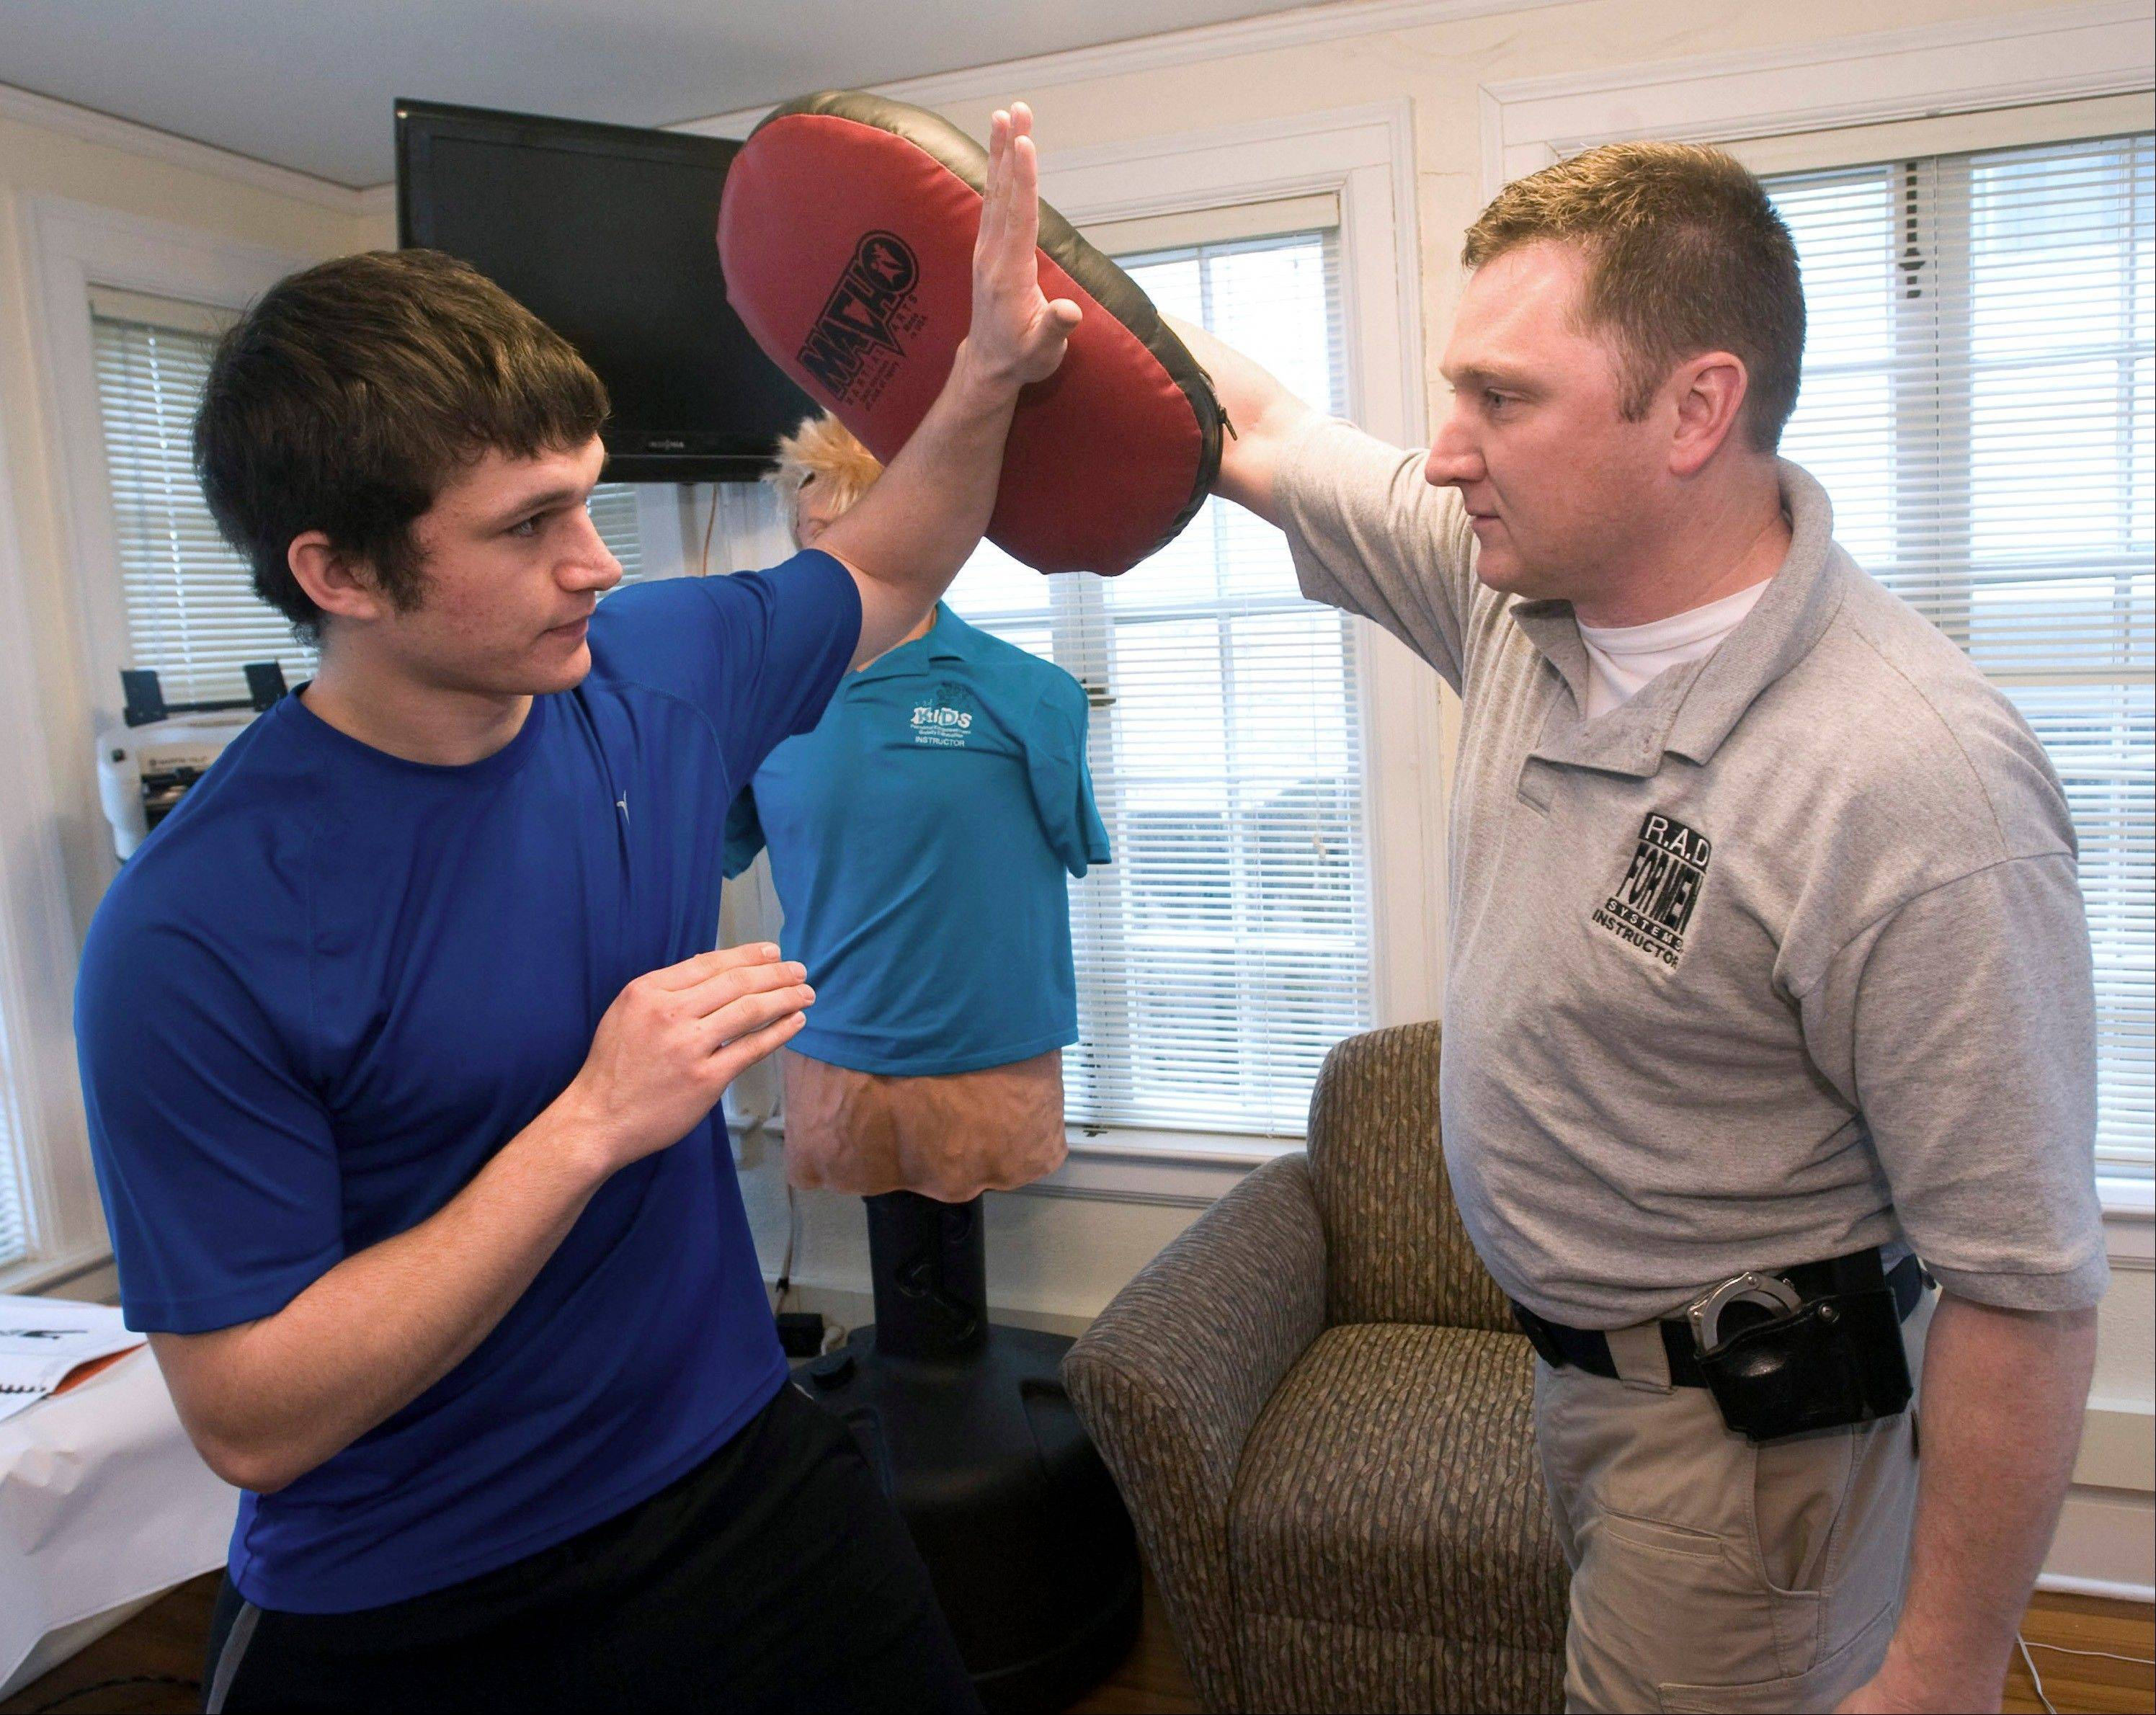 University of Illinois Police Detective Robert Murphy, right, demonstrates a blocking move to Steven Chraca at the Division of Public Safety Annex in Urbana. Chraca is the instructor for the women�s class Rape Aggression Defense, also known as RAD. Building upon the popularity of its self-defense classes for women, the department has begun offering similar classes for men.